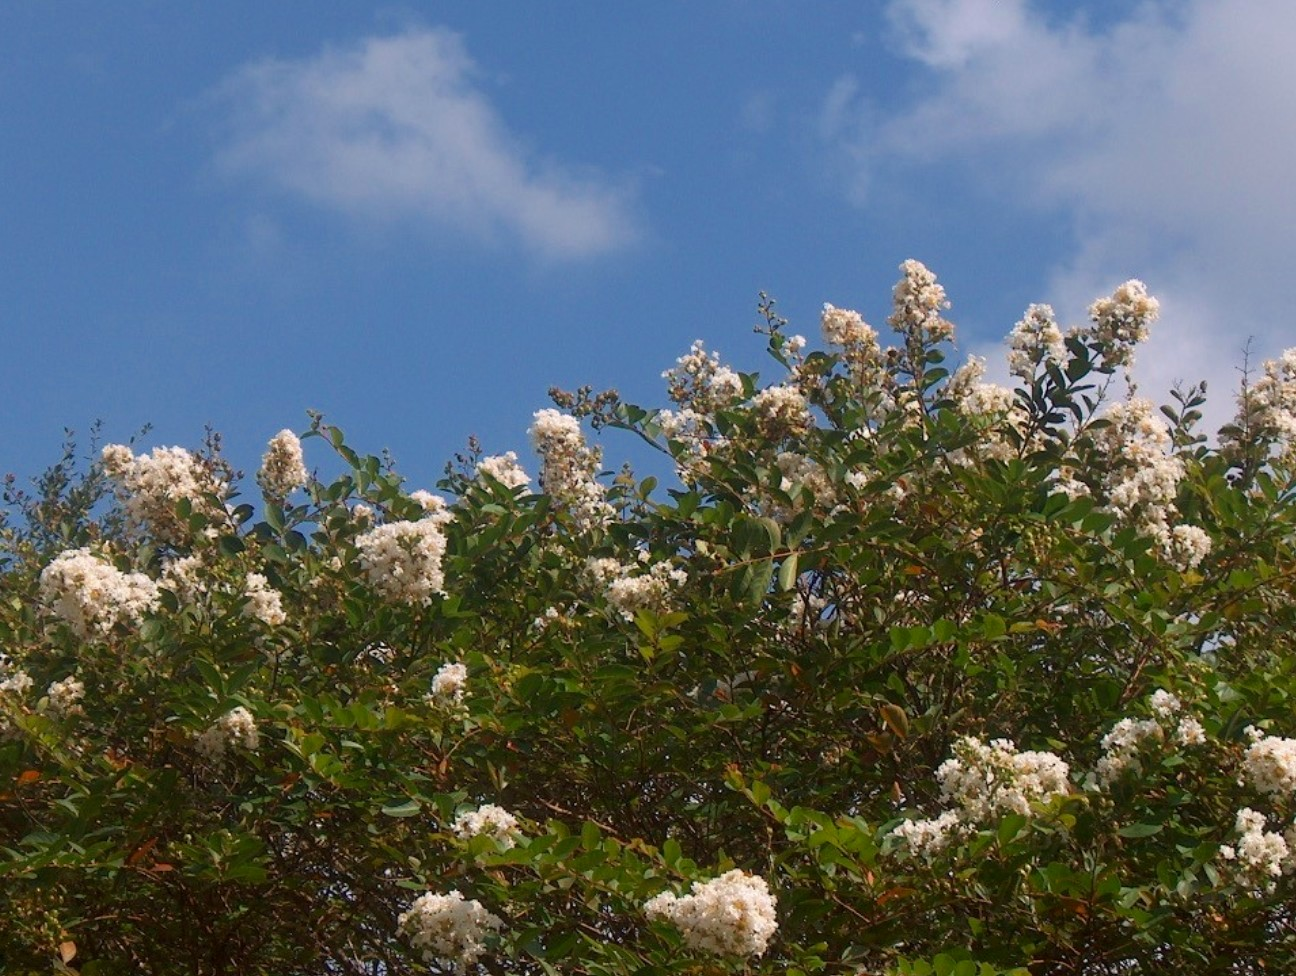 Lagerstroemia indica 'Byer's Wonderful White'  / Lagerstroemia indica 'Byer's Wonderful White'